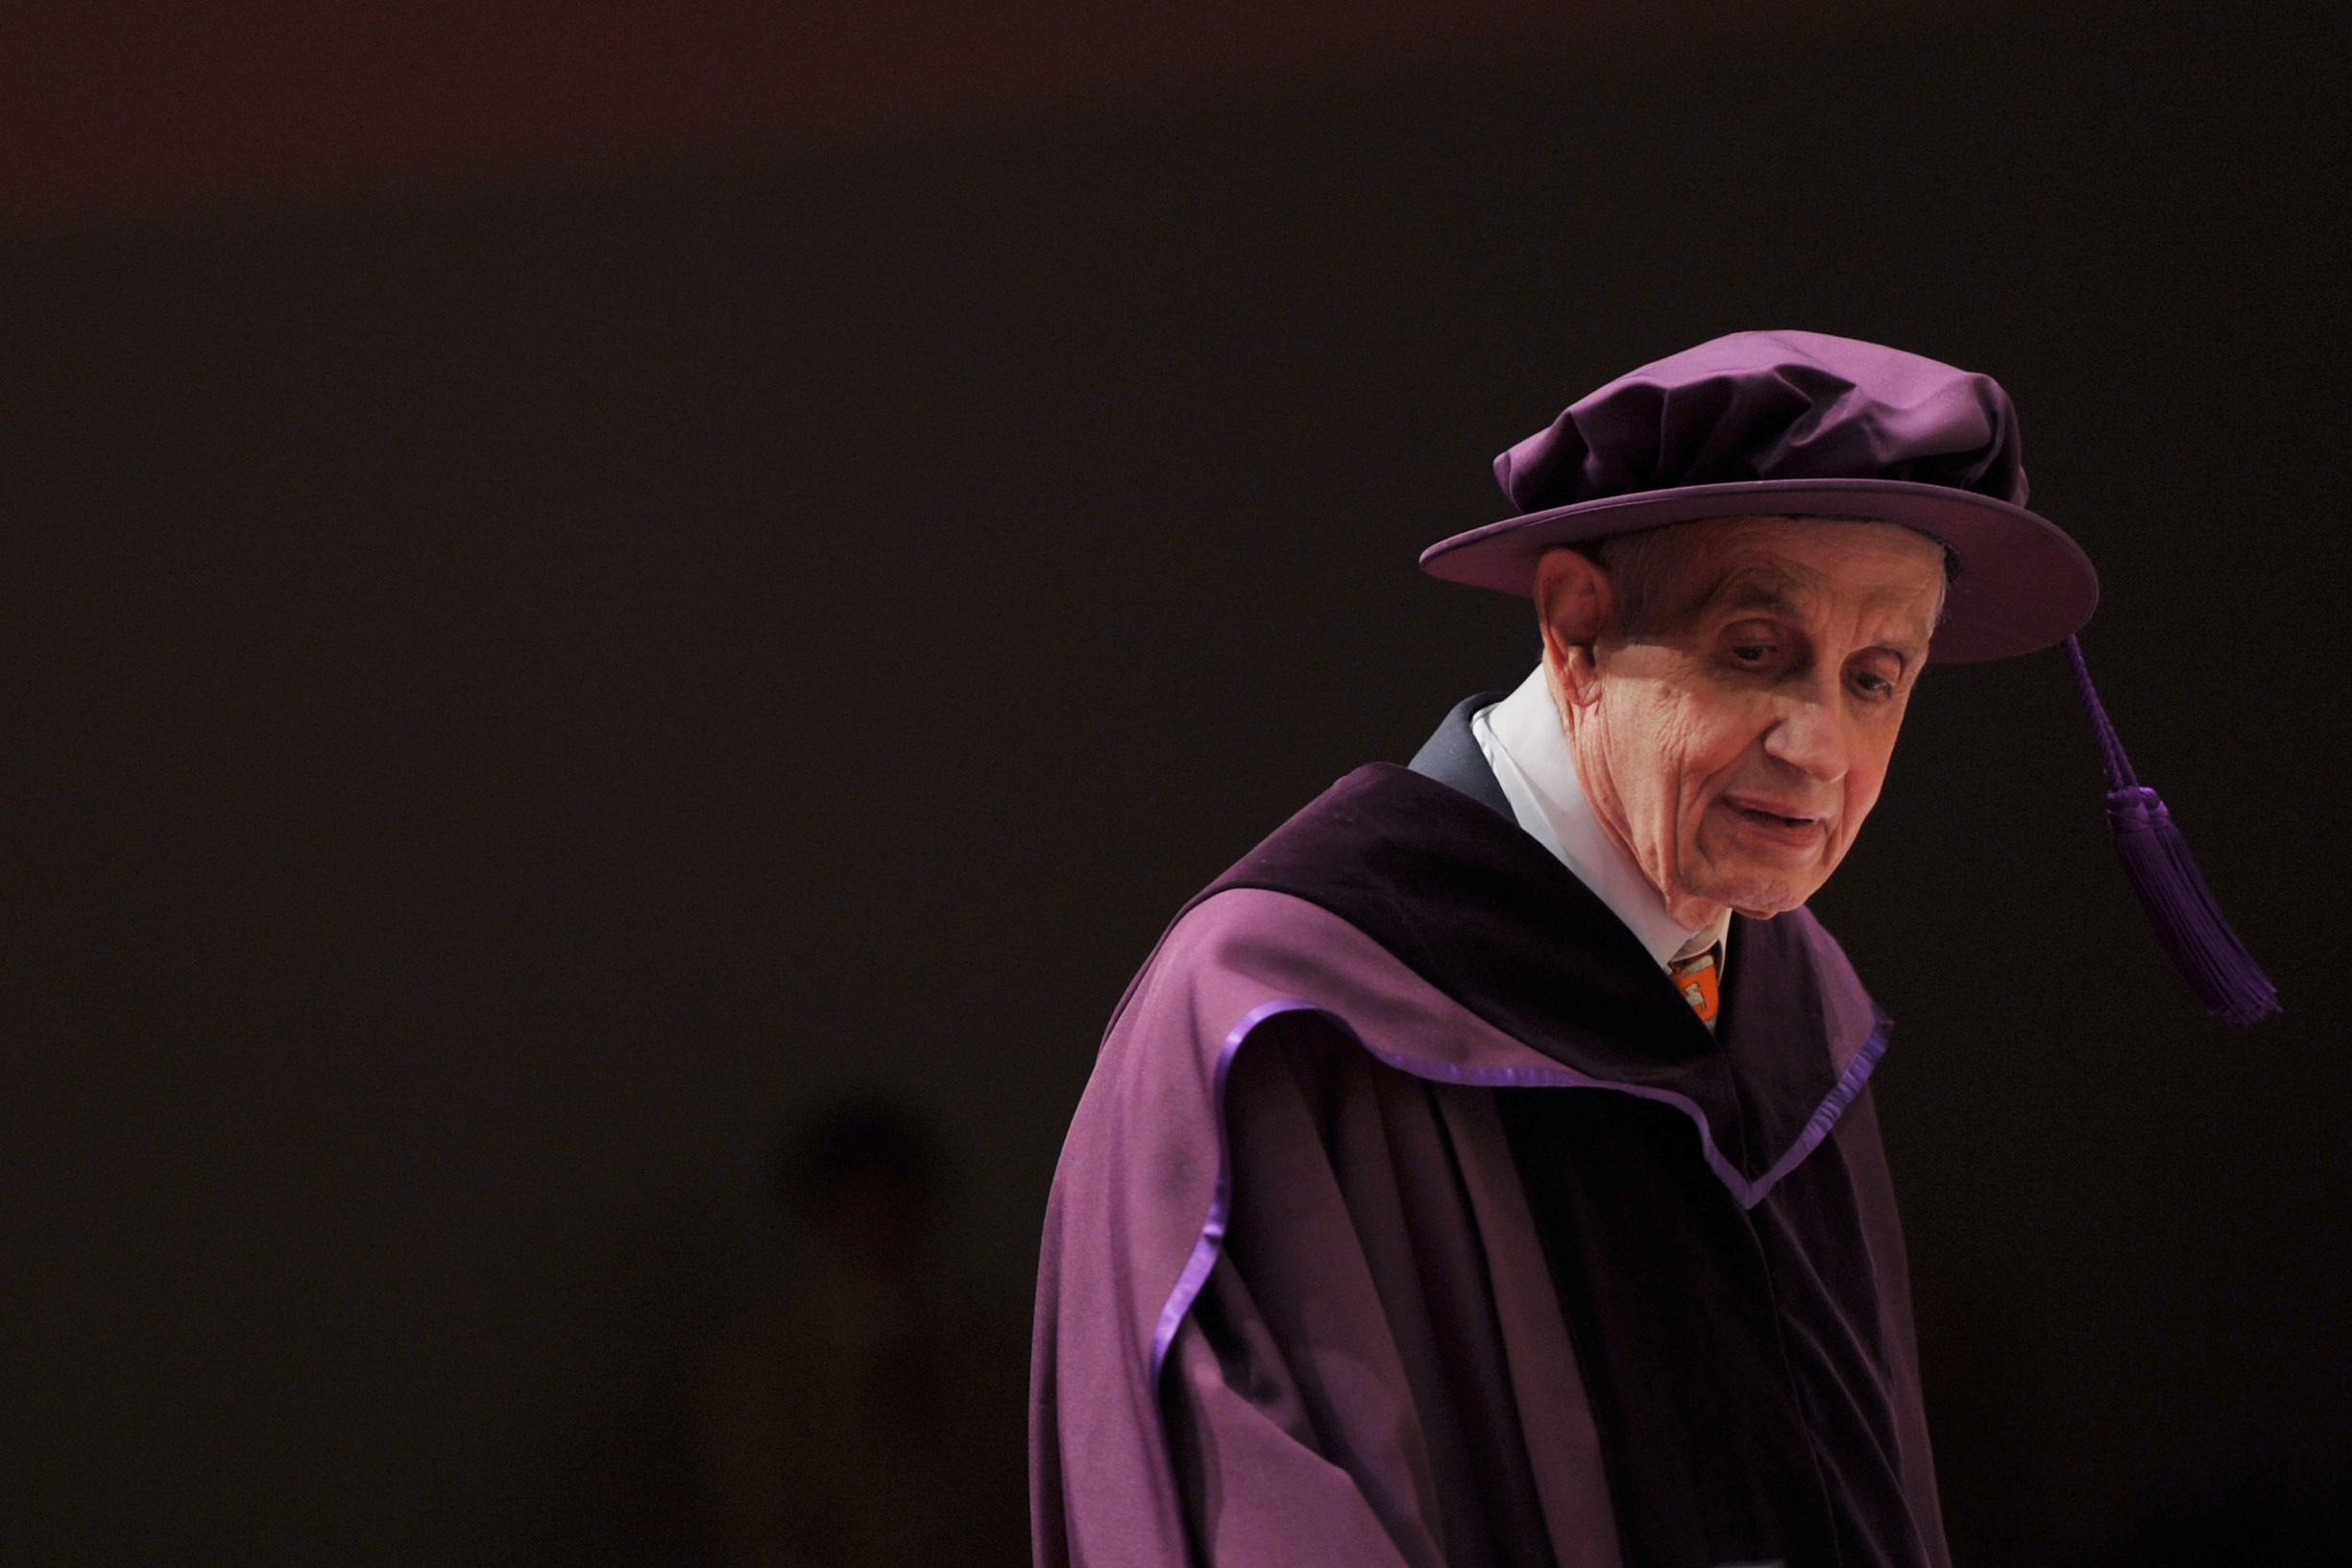 Professor John Forbes Nash, Jr, winner of the Nobel Prize in Economic Sciences, was conferred an honorary doctorate of science at the City University of Hong Kong on November 8, 2011. Professor Nash is best known for his discovery, the